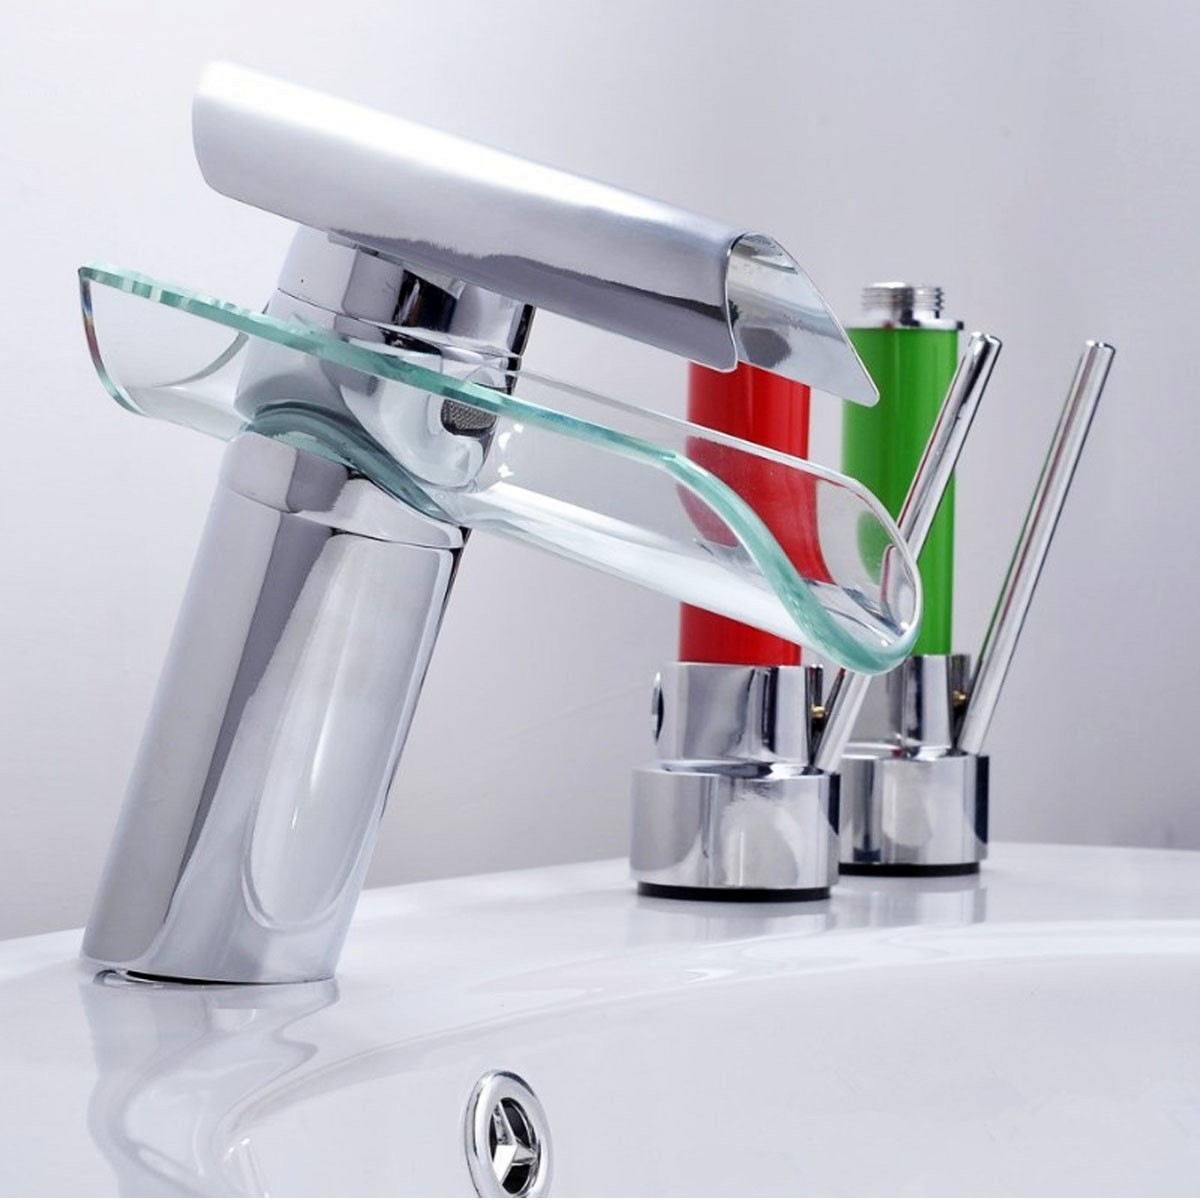 Bathroom Faucet Advanced Modern Glass Waterfall contemporary Chrome Brass Bathroom basin Faucets sink Mixer waterfall Tap набор насадок ziver для машинки для стрижки животных 4 шт